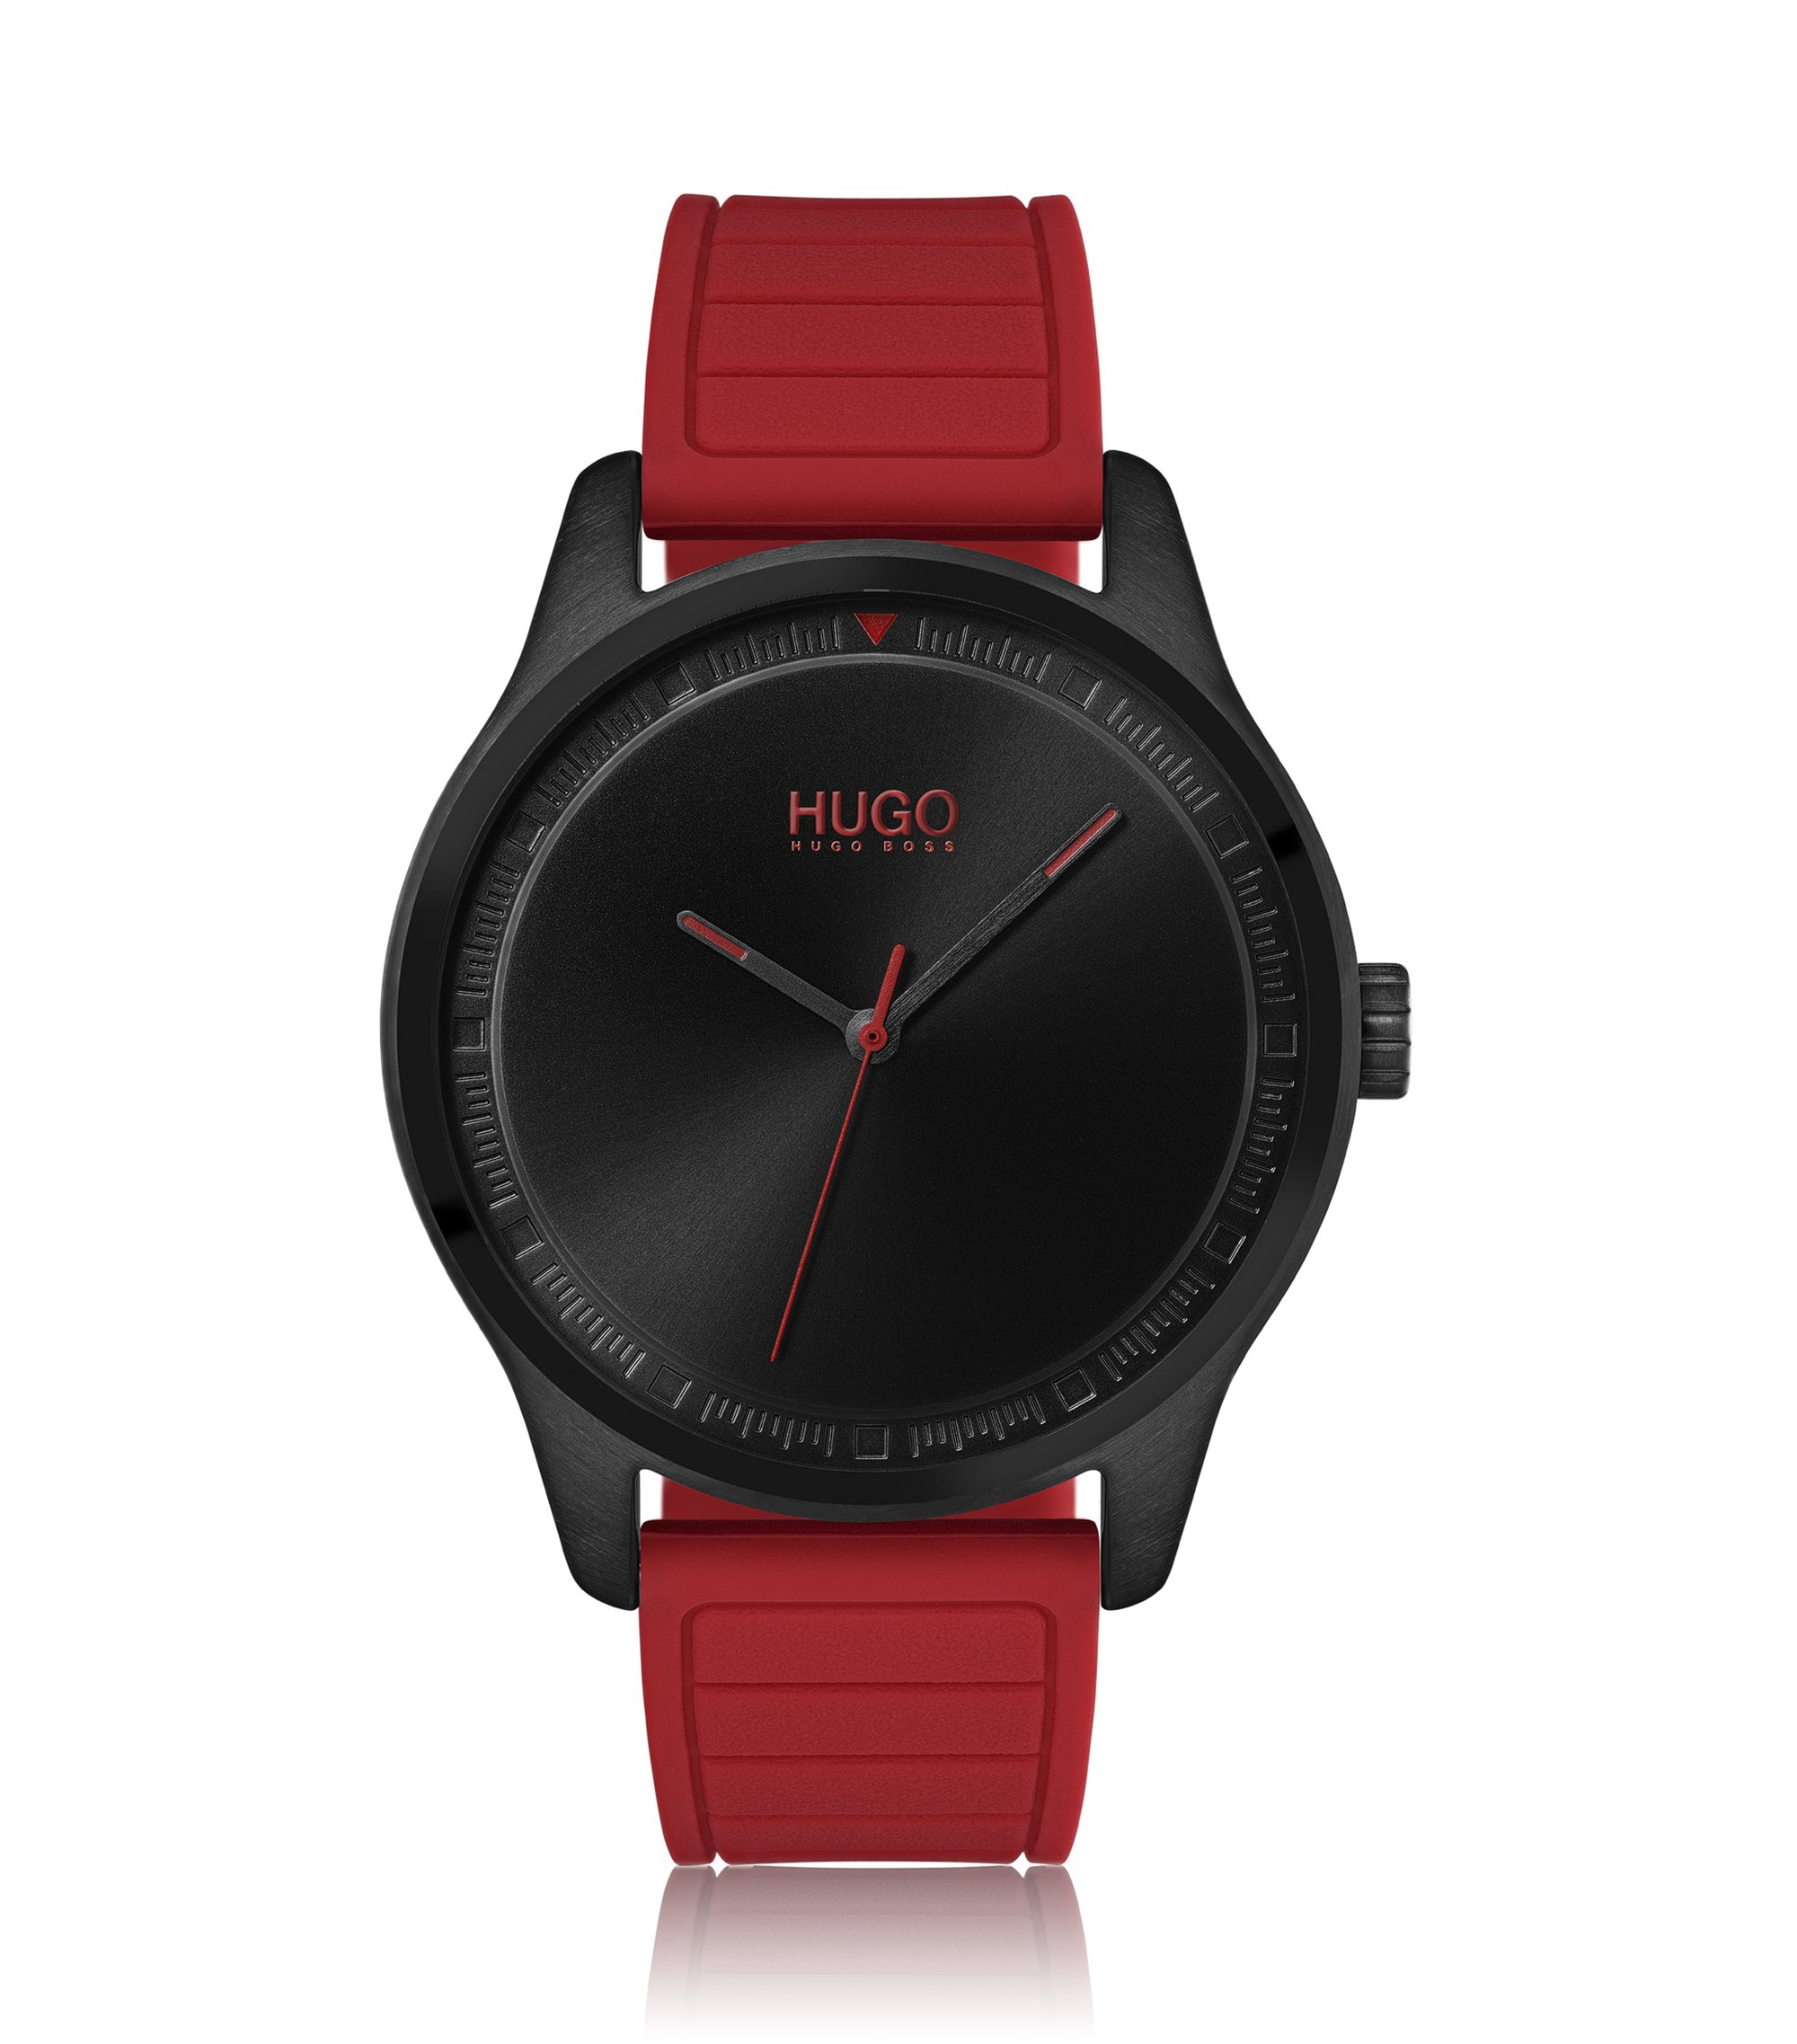 Stainless-steel watch with red silicone strap, Red